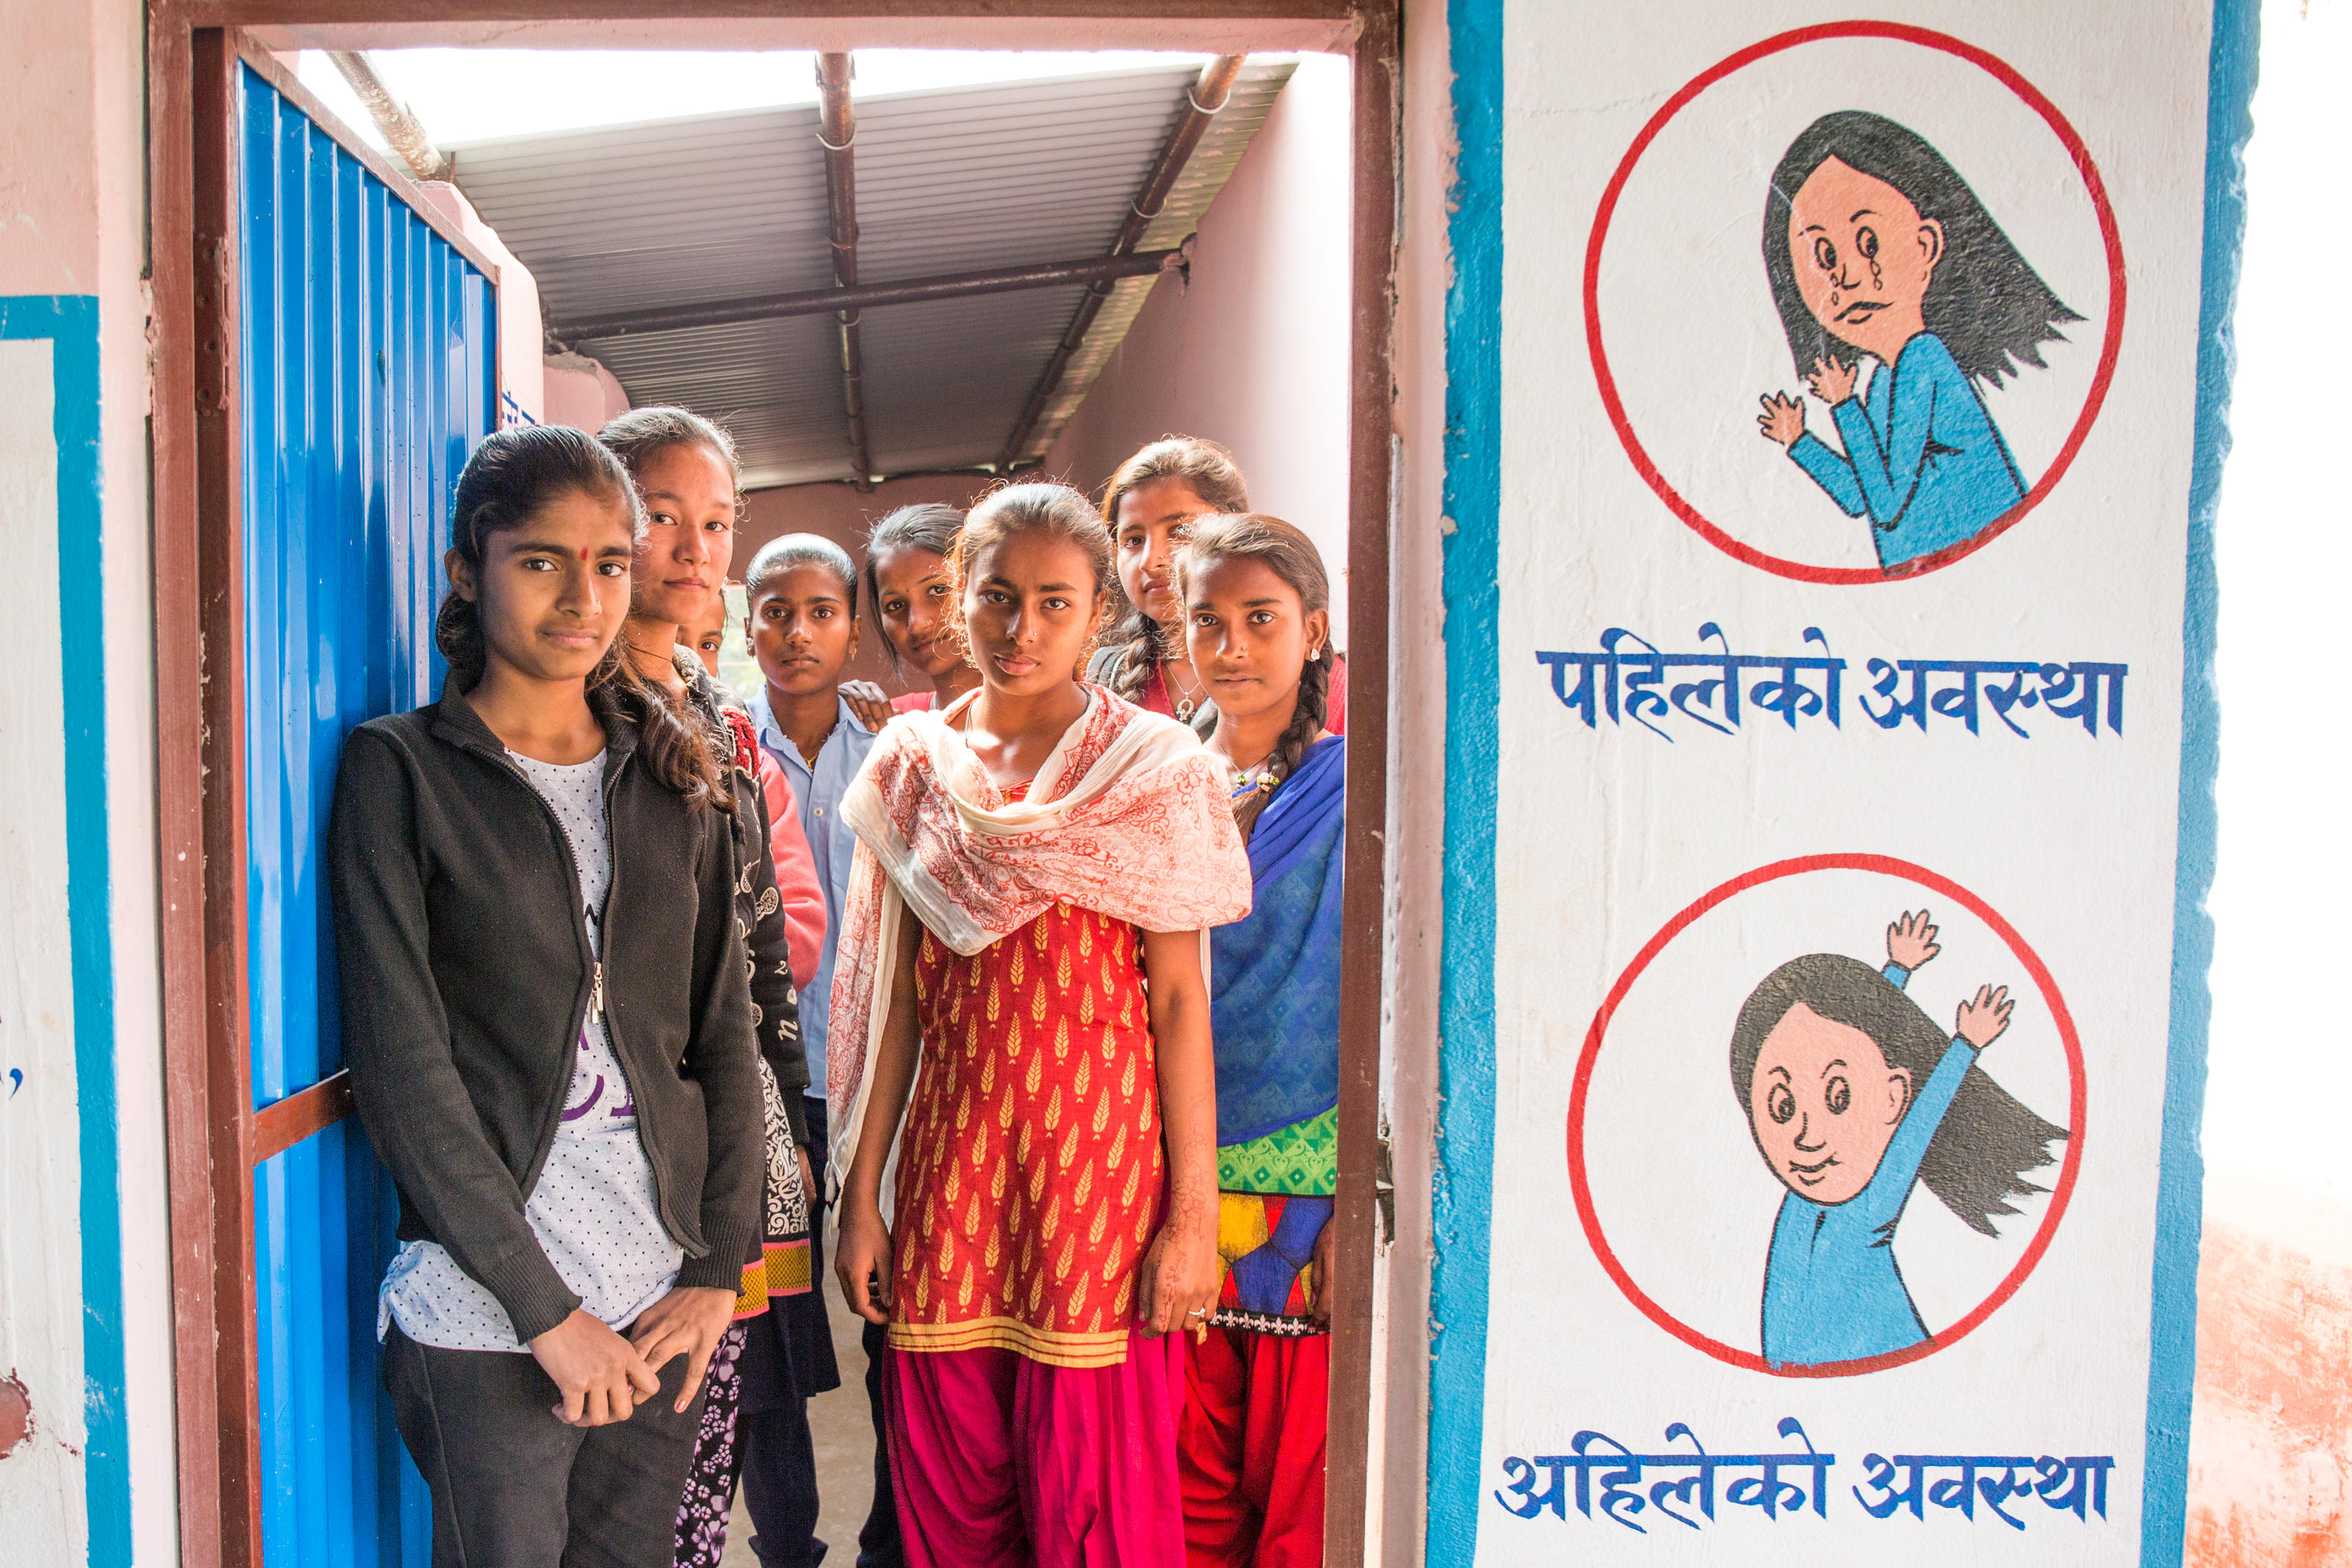 Bina,15, with her friends posing in front of their newly constructed girls friendly latrine at their school, Nepal.